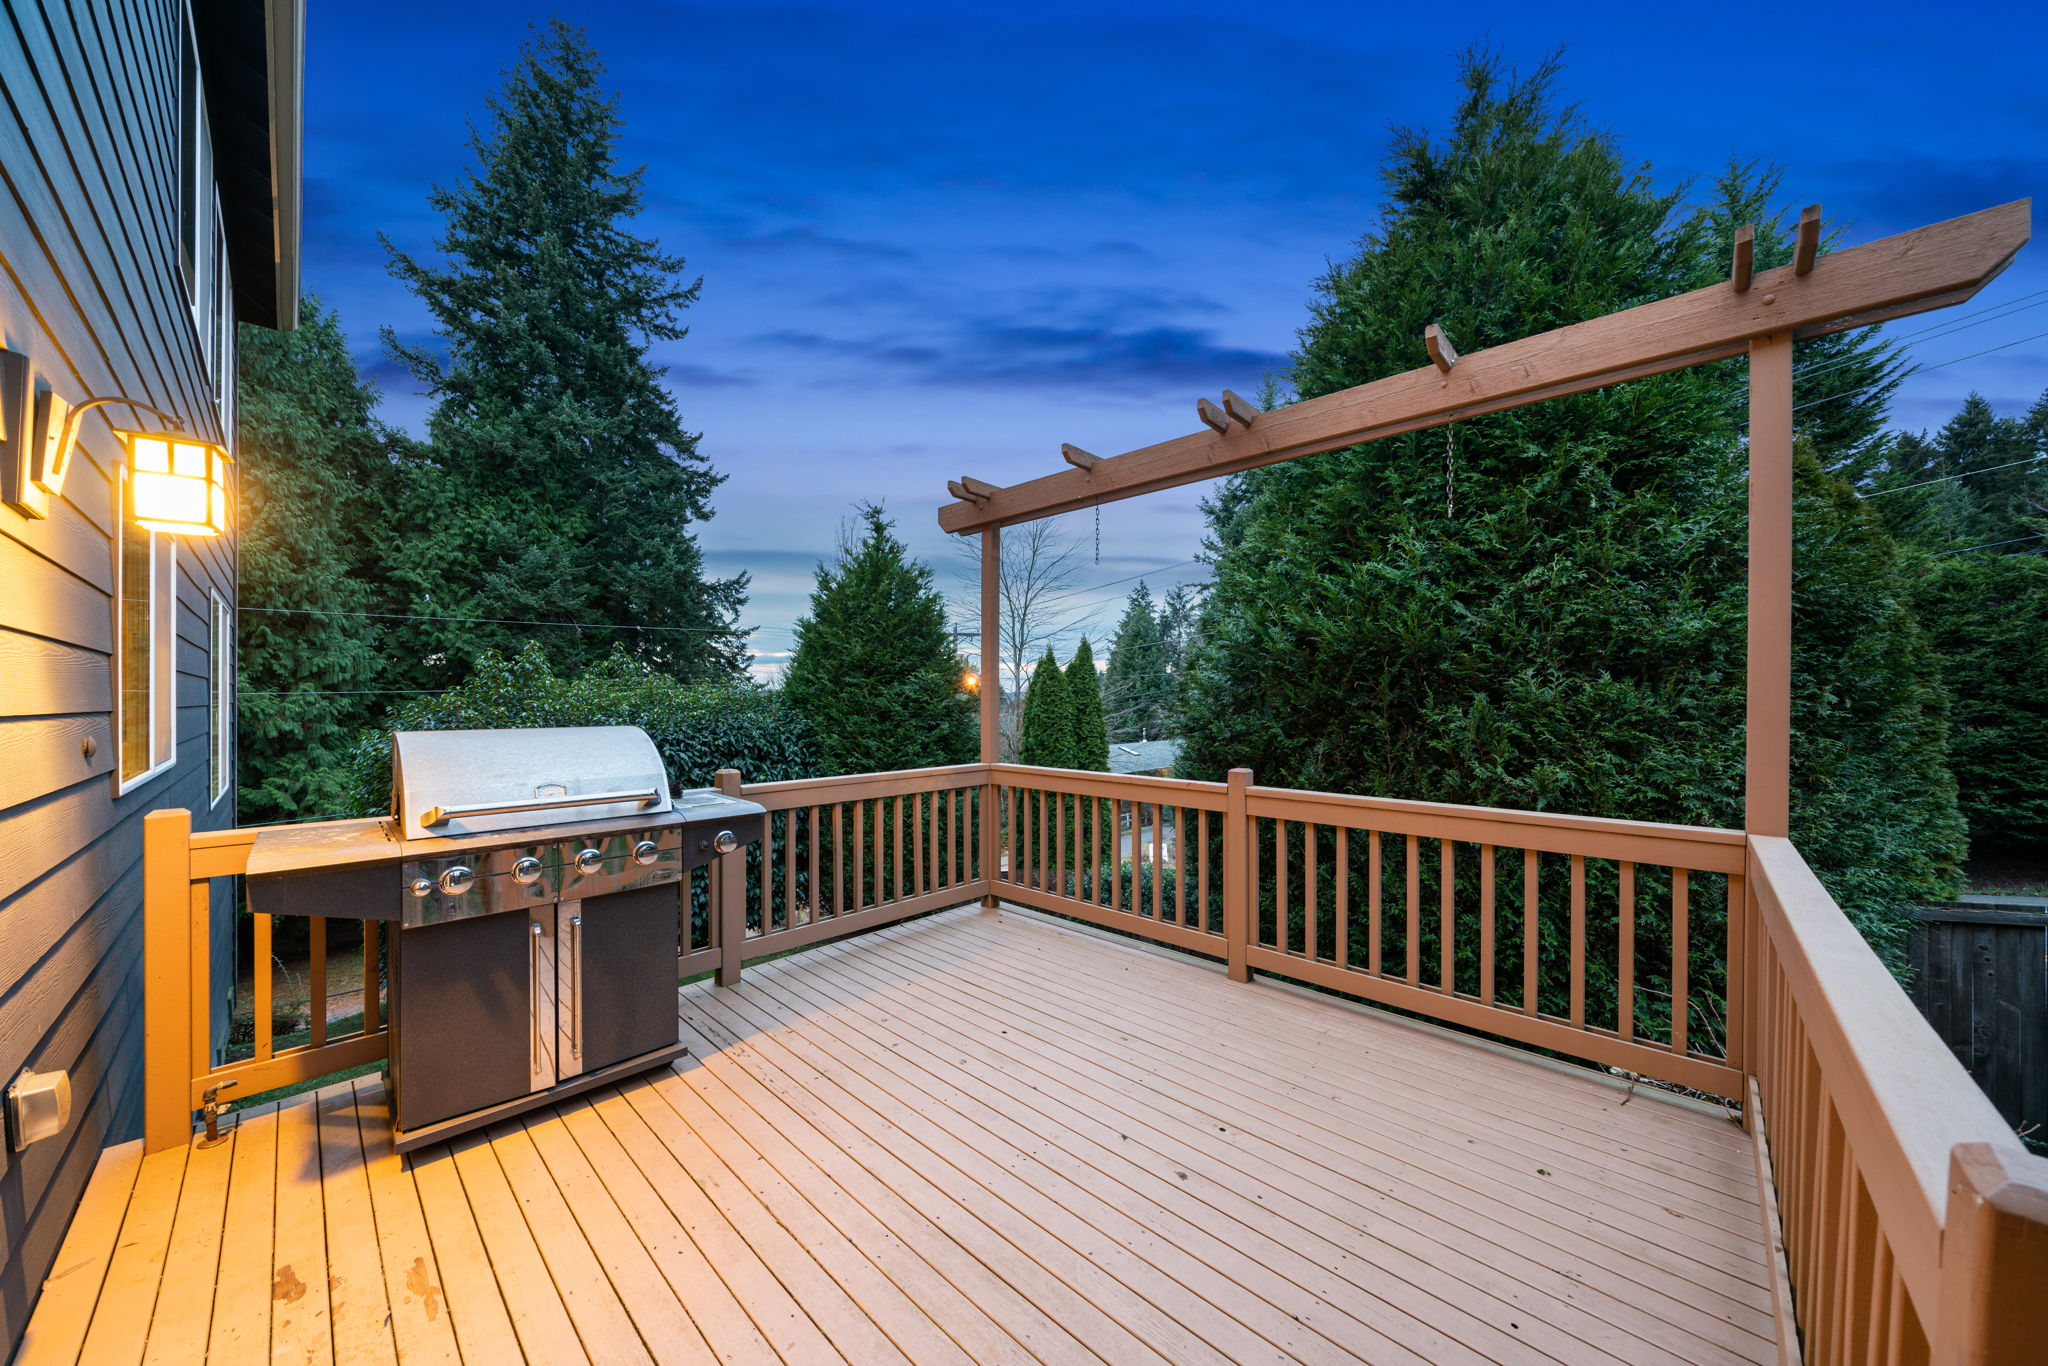 Lots of room for patio furniture and your BBQ!